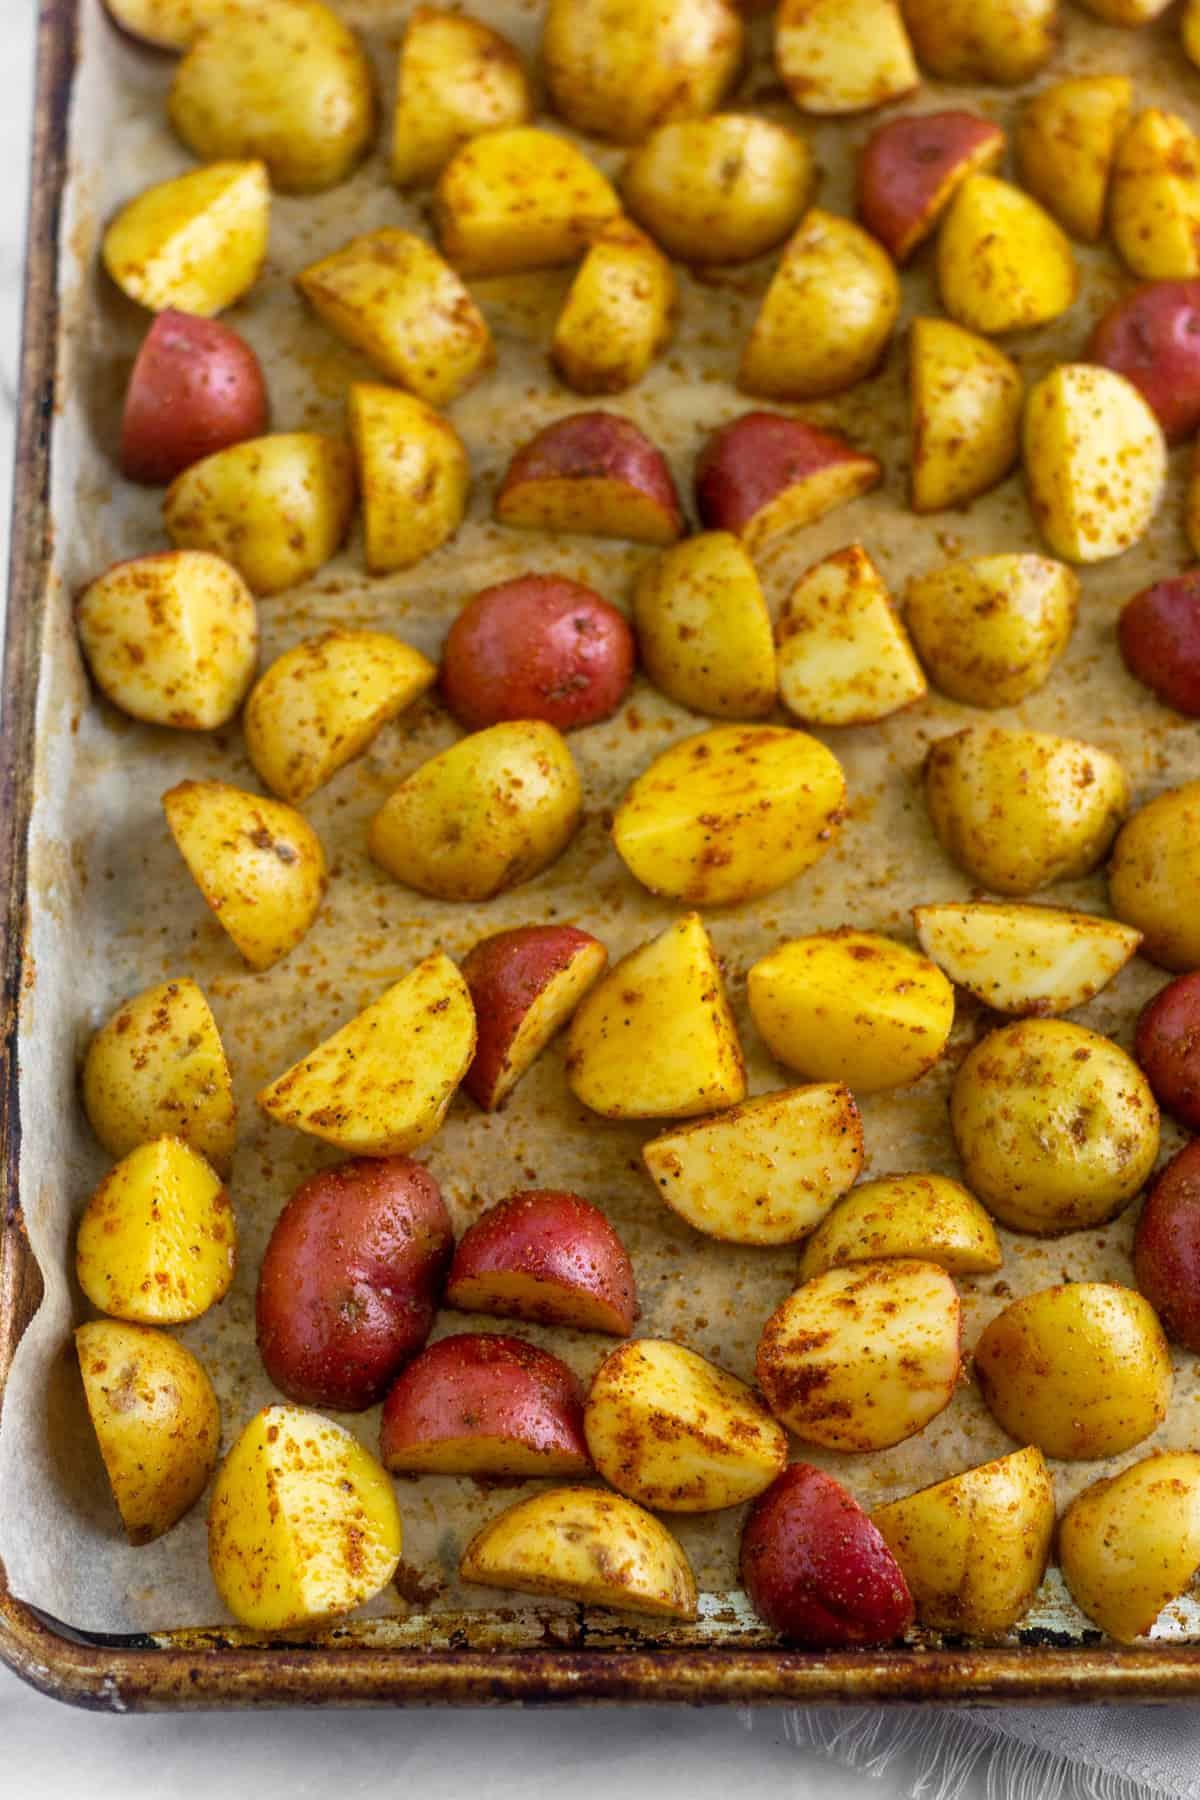 Baking sheet with quartered raw potatoes on it covered in spices waiting to be baked